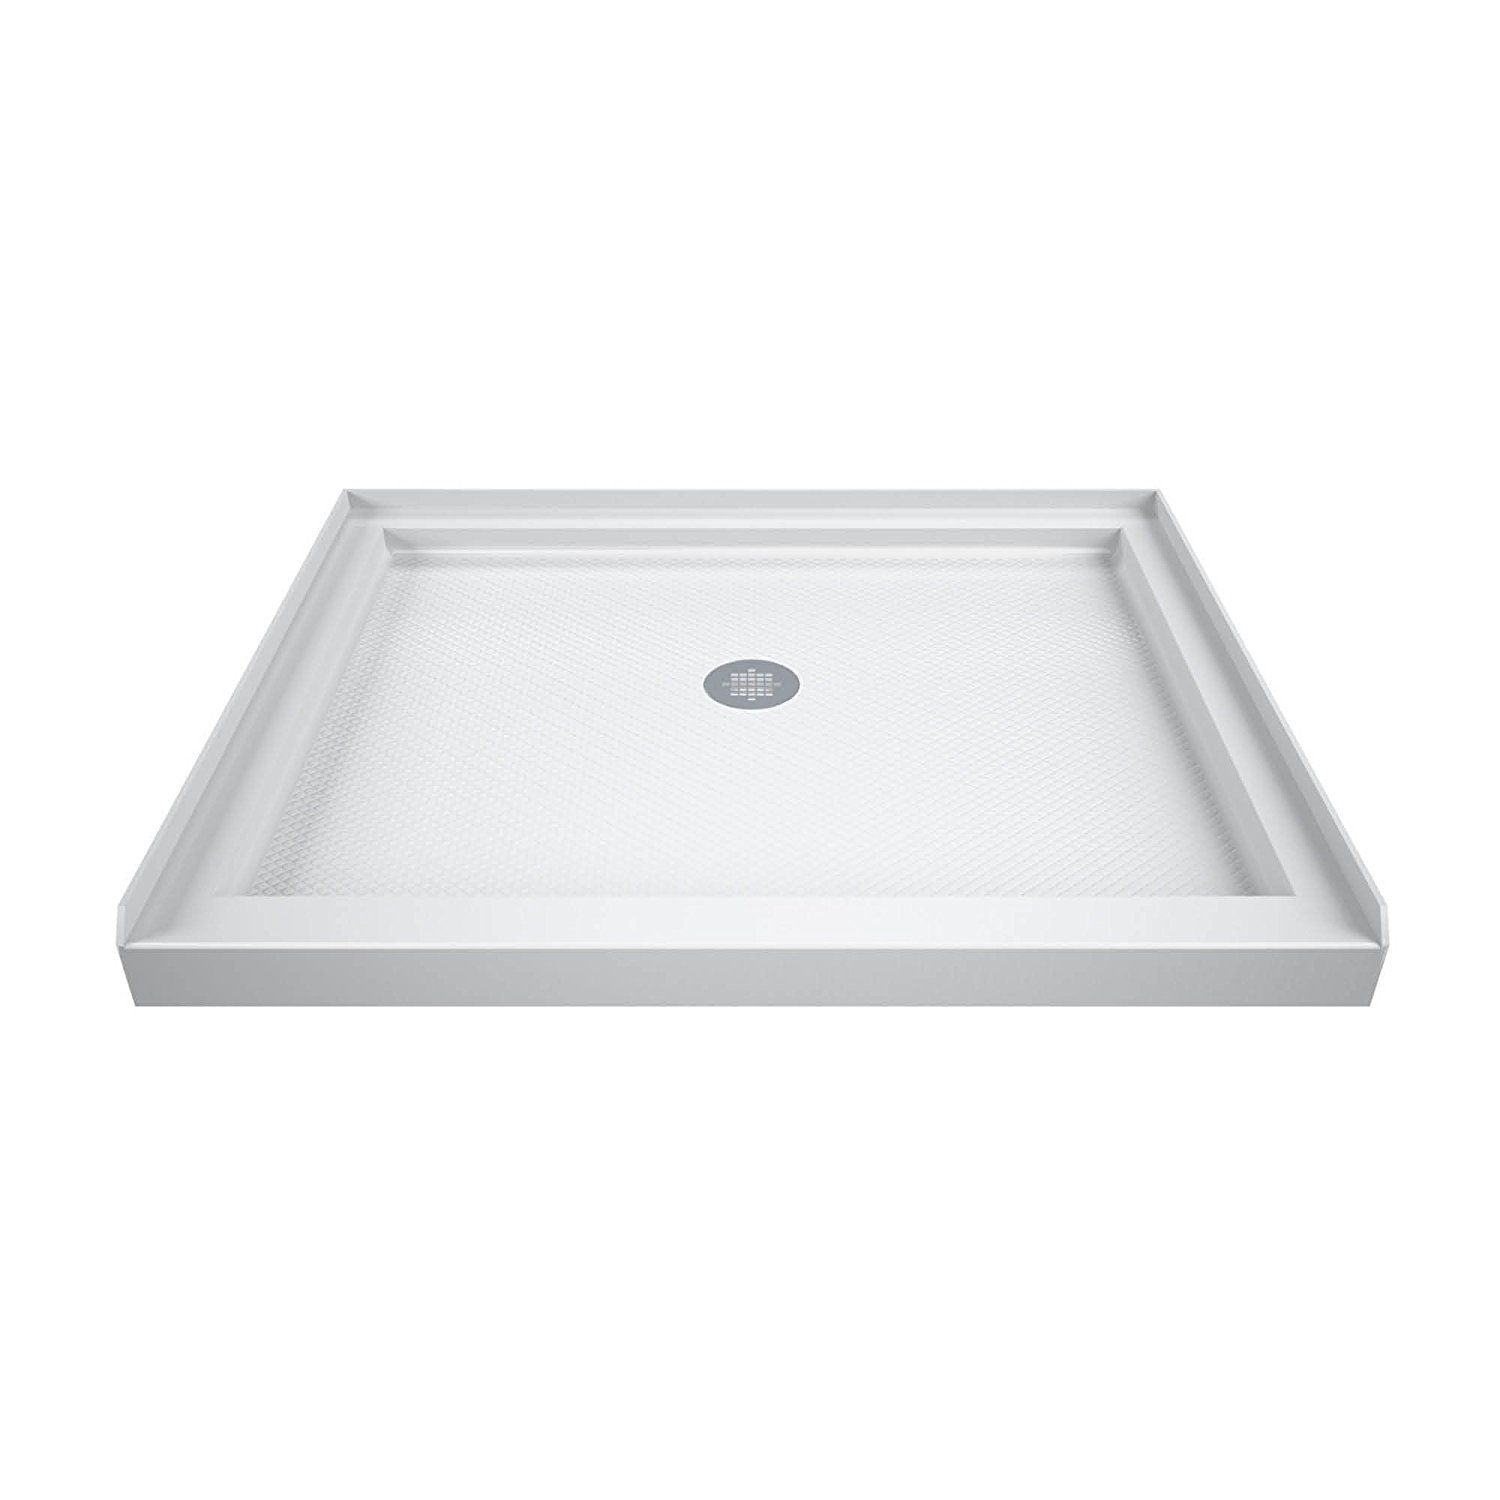 Most Acrylic And Fiberglass Bathe Pans Price Between 100 And